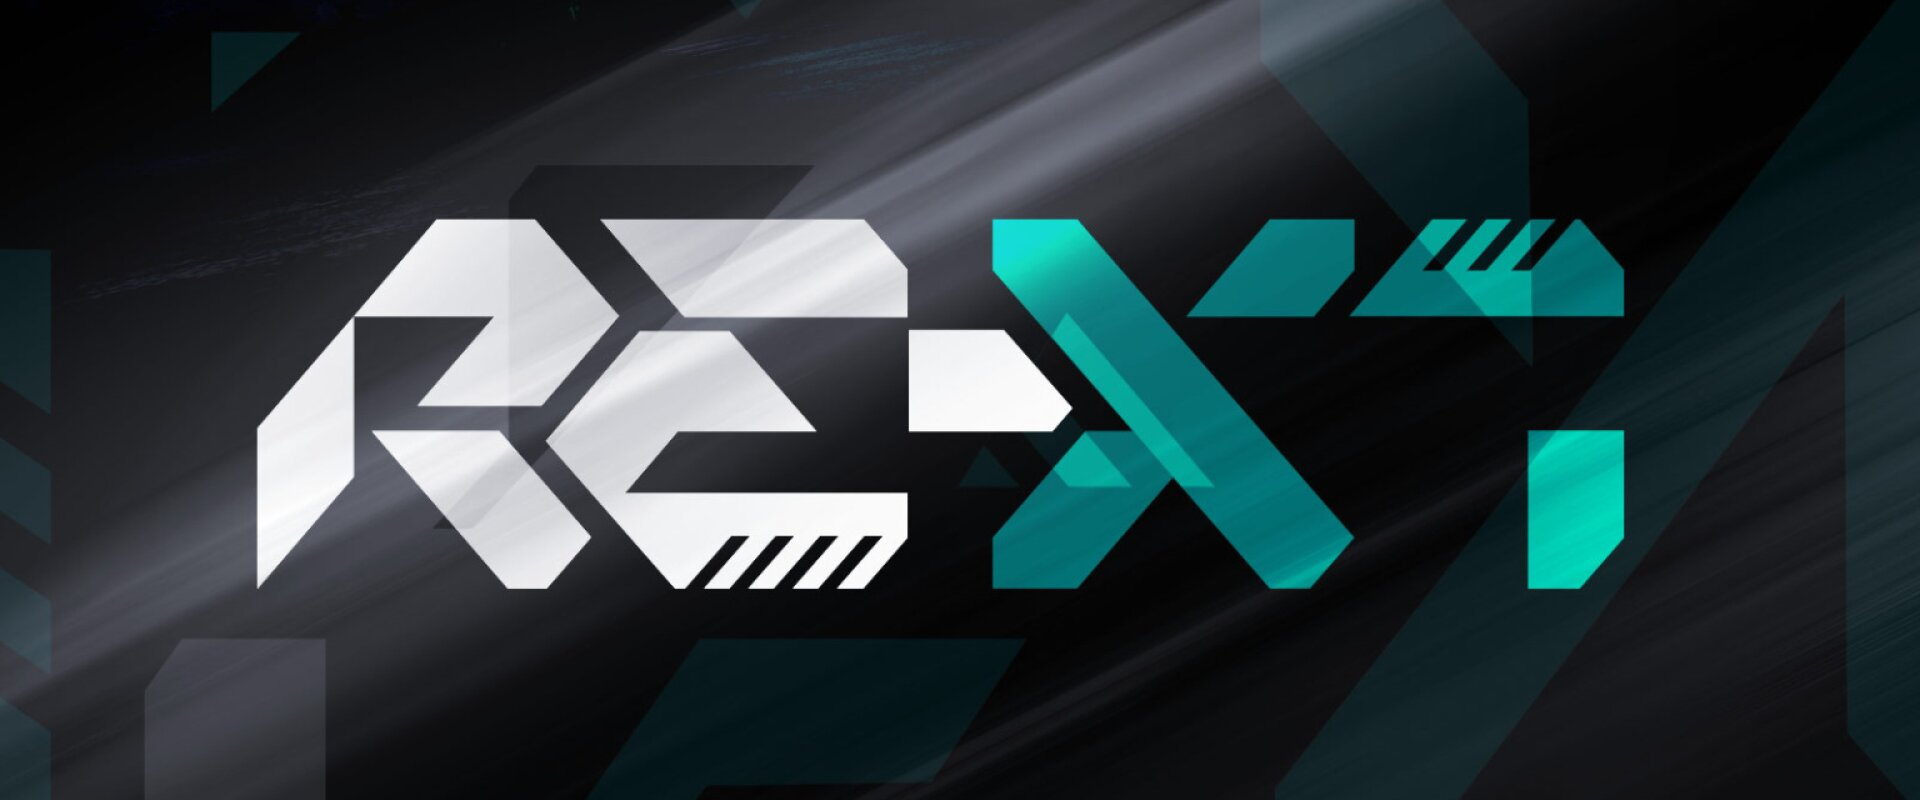 re-x1 logotype design for first electric rally car